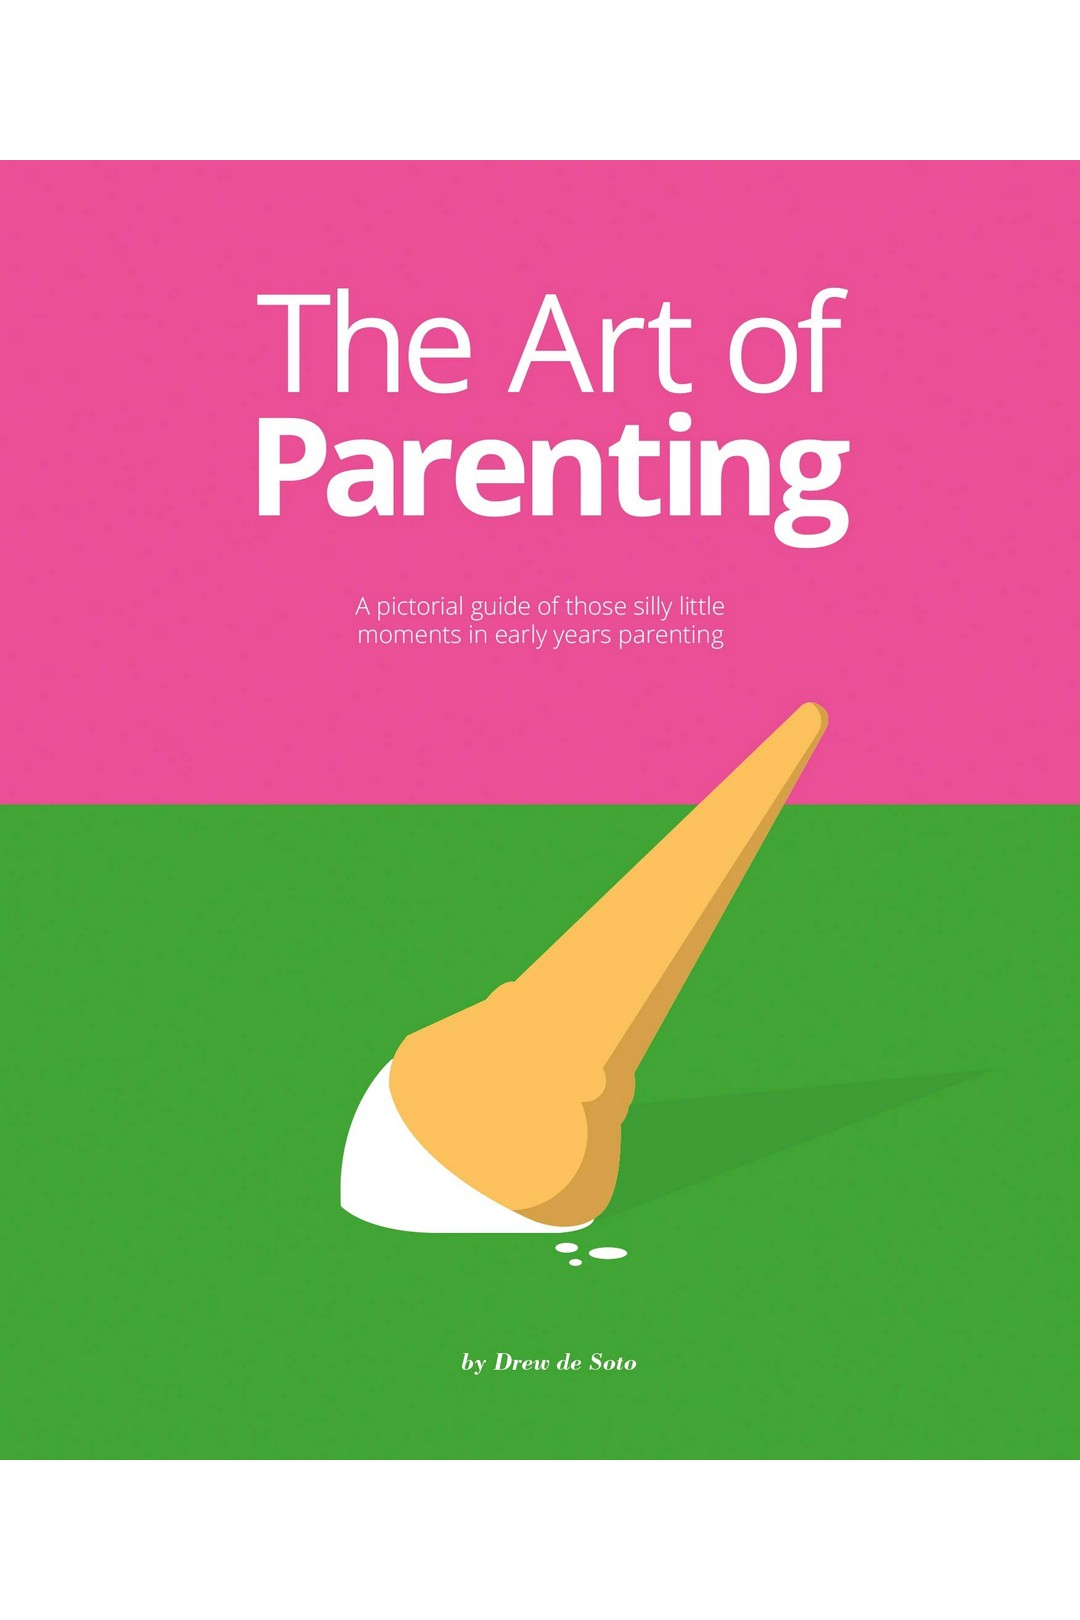 The Art Of Parenting: The Things They Don't Tell You By Drew De Soto